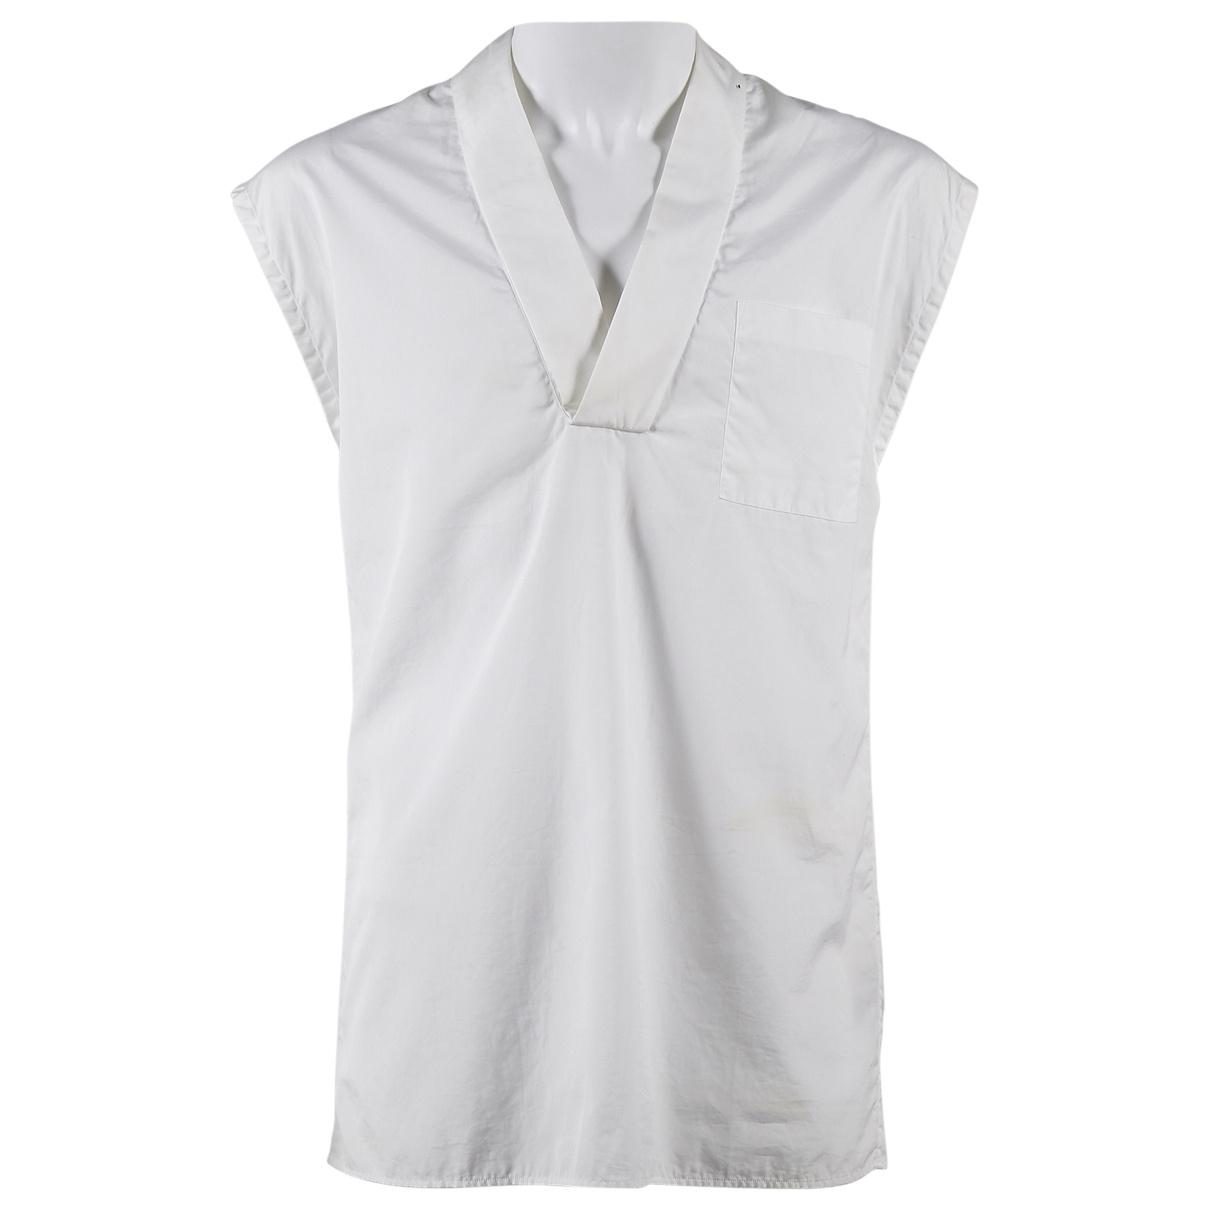 912c491b9 Lyst - Dior Pre-owned White Cotton Shirts in White for Men